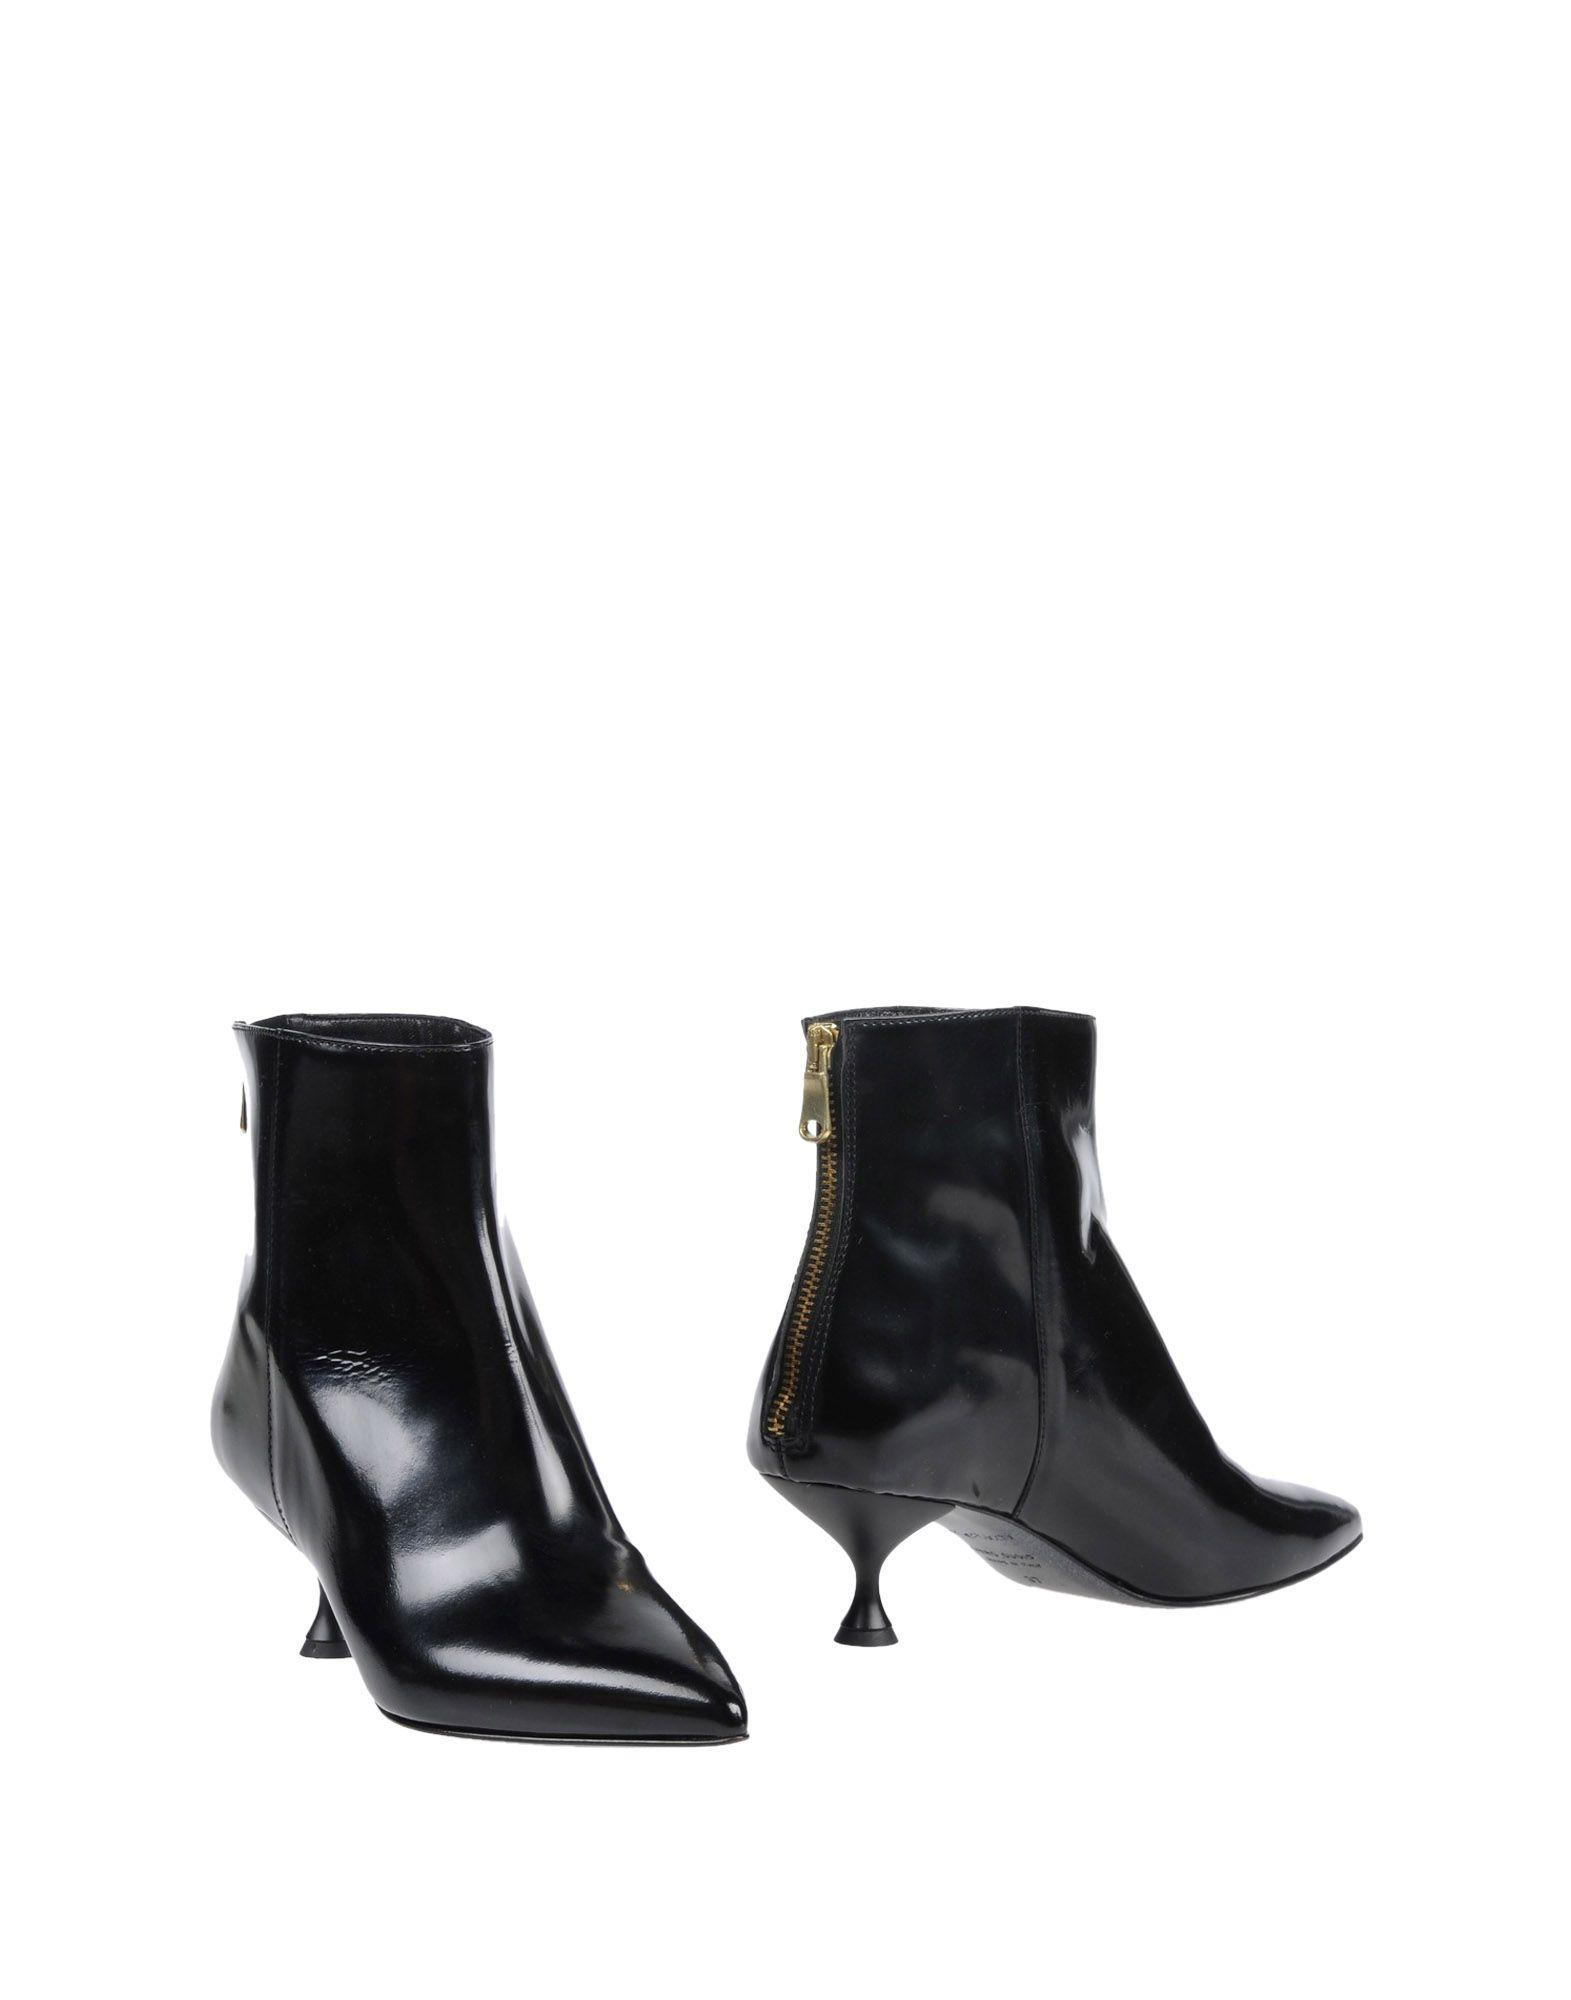 Tipe E Tacchi Ankle Boots In Black